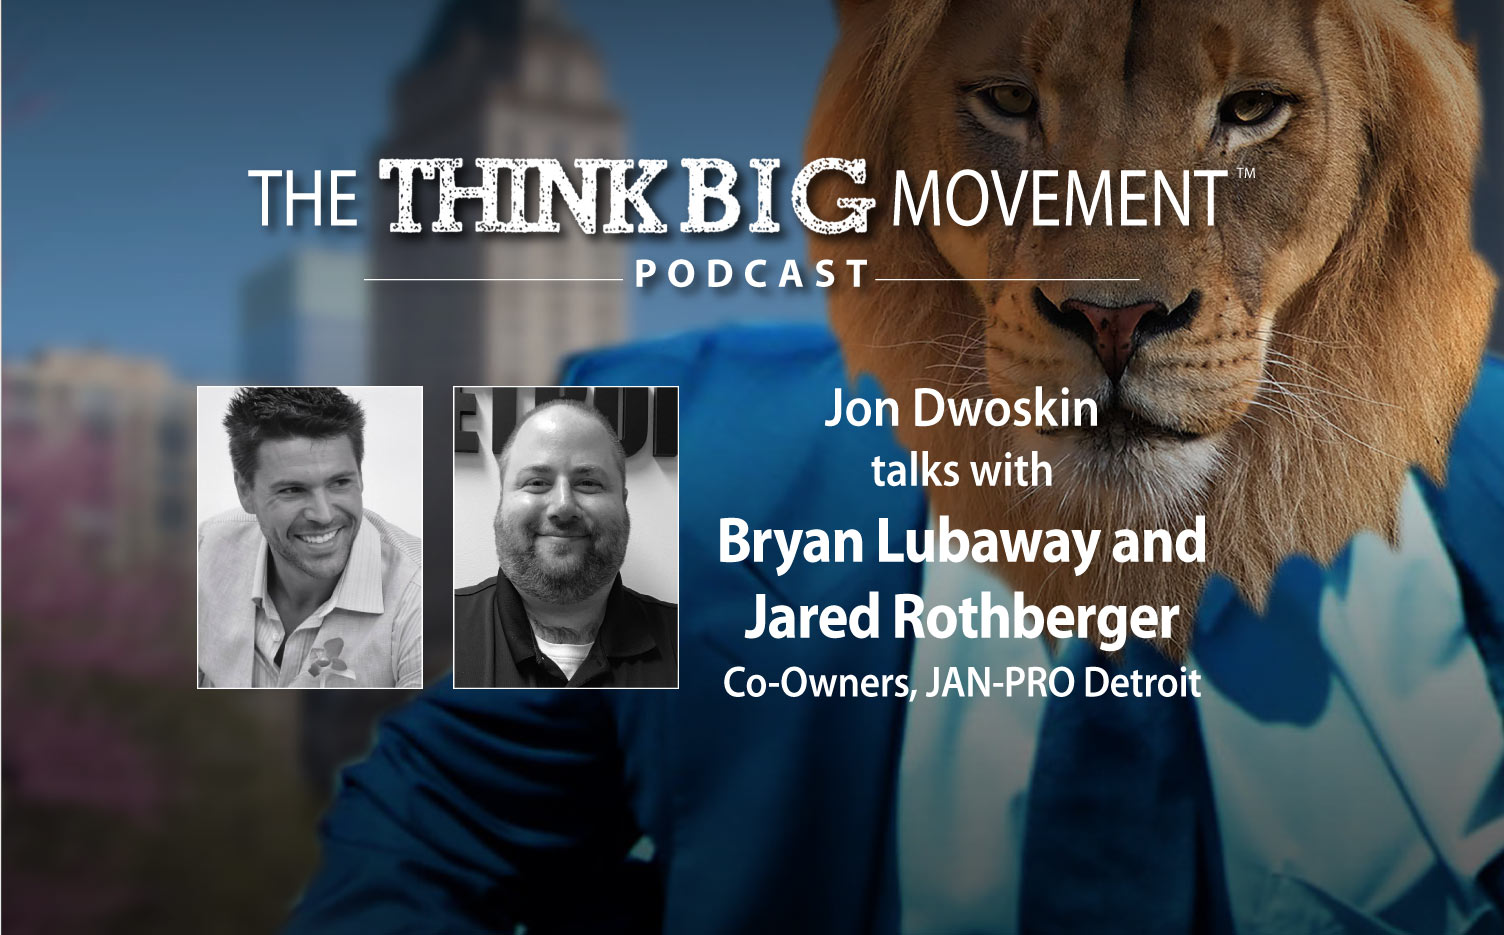 The Think Big Movement Podcast: Jon Dwoskin Interviews Bryan Lubaway and Jared Rothberger Co-Owners of JAN-PRO Detroit